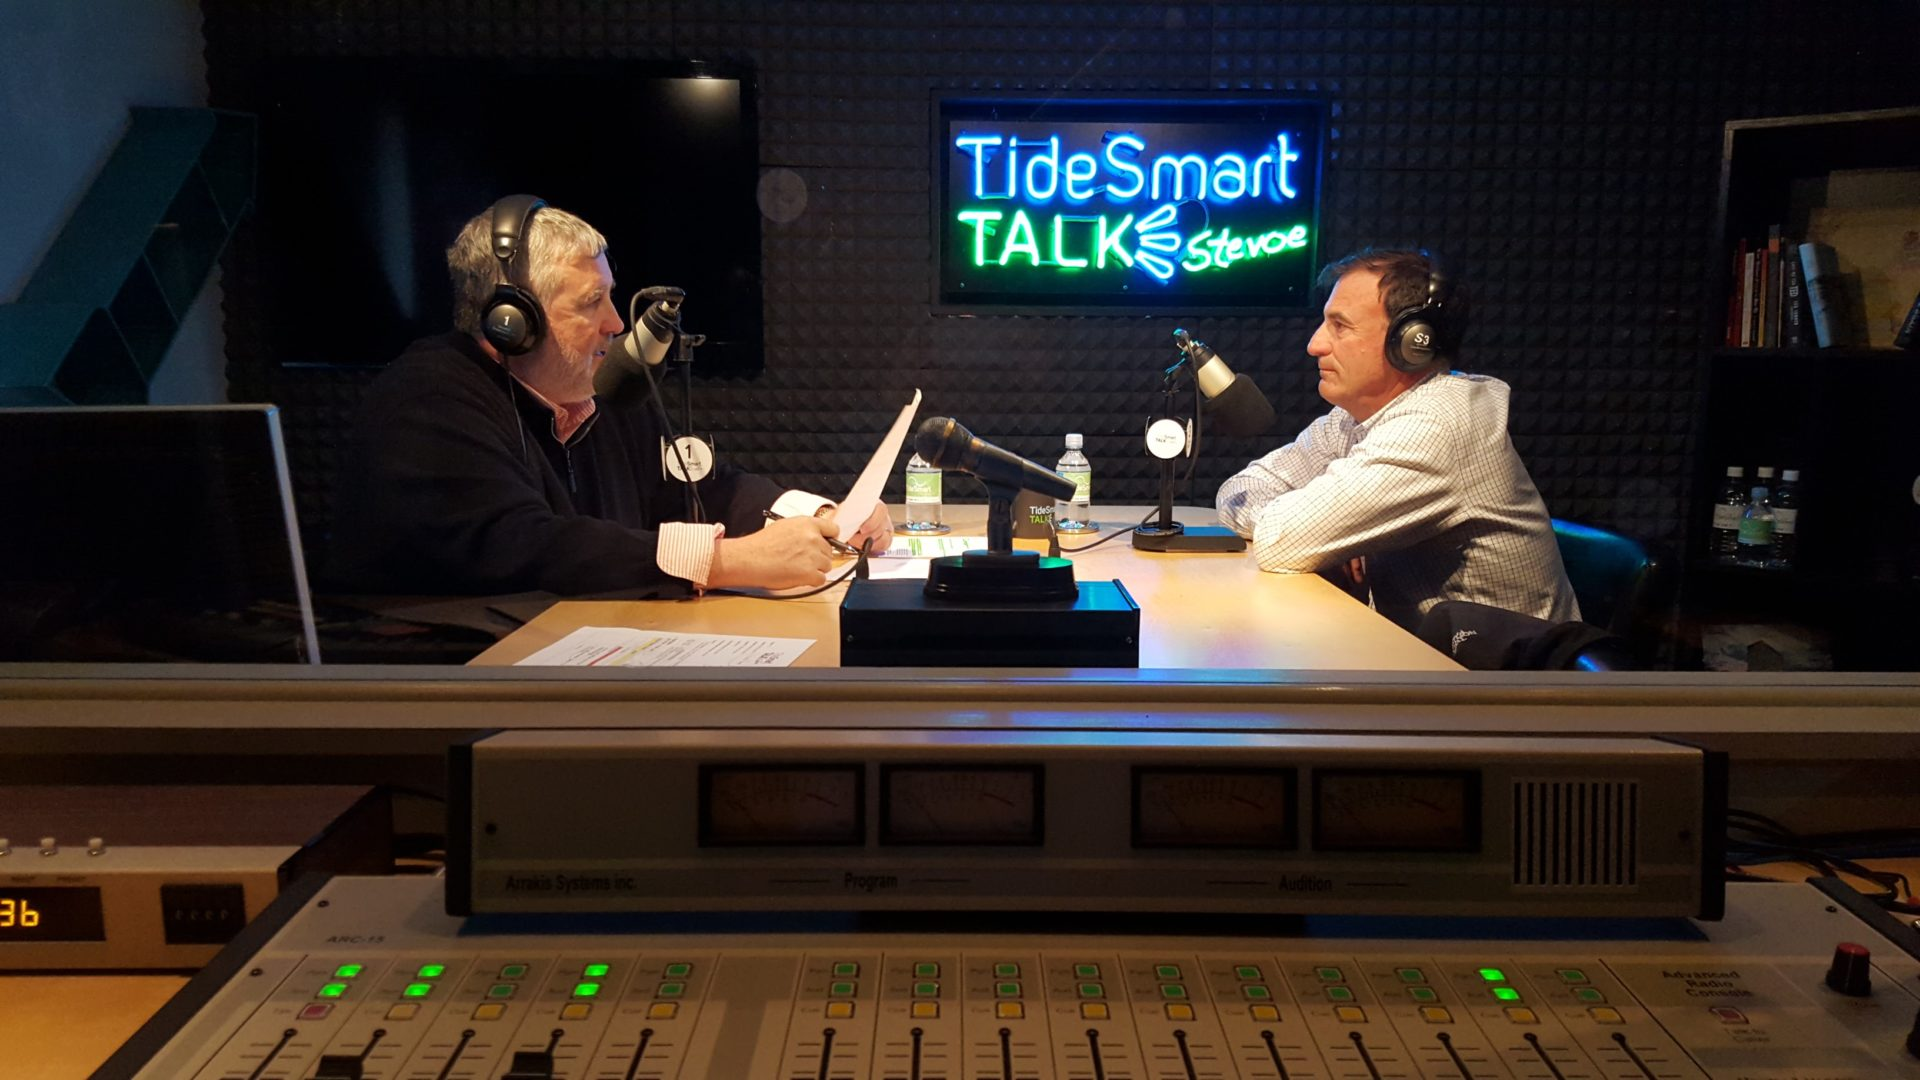 Host of TideSmart Talk with Stevoe, Steve Woods, welcomed Co-Founder of Cold River Vodka, Don Thibodeau (at right).